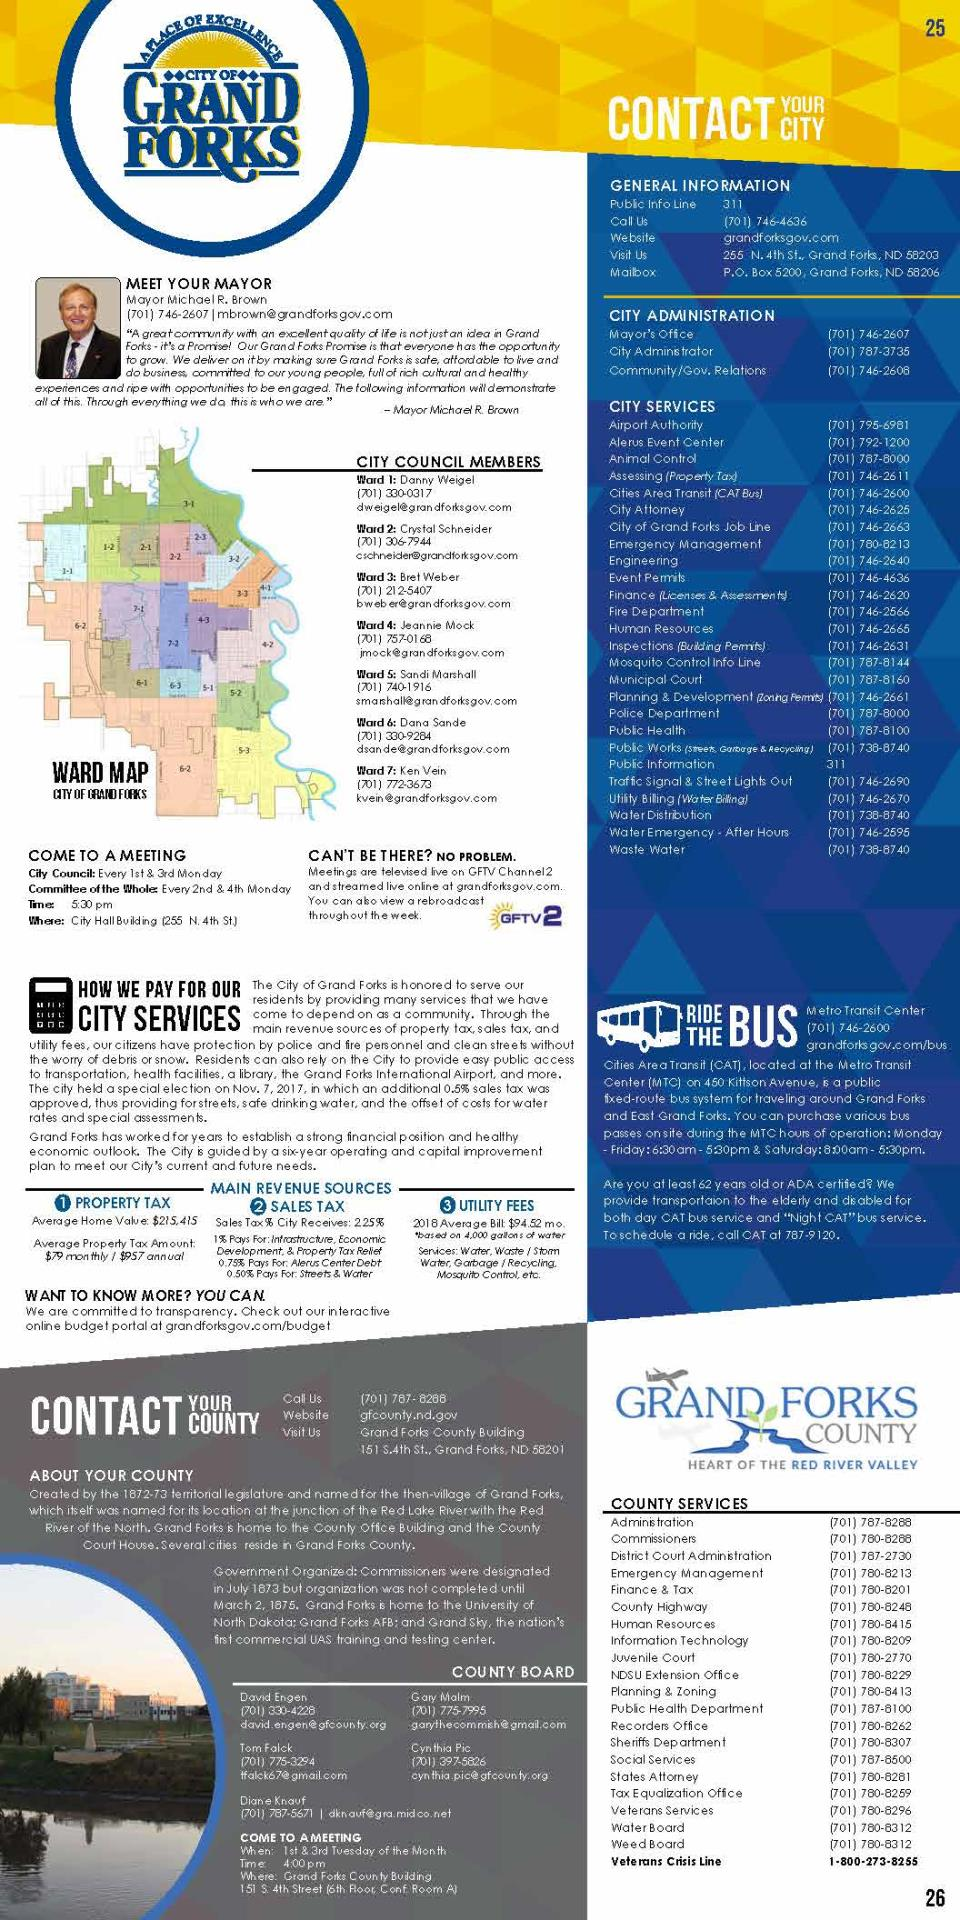 2018 Grand Forks Calendar - City and County Information